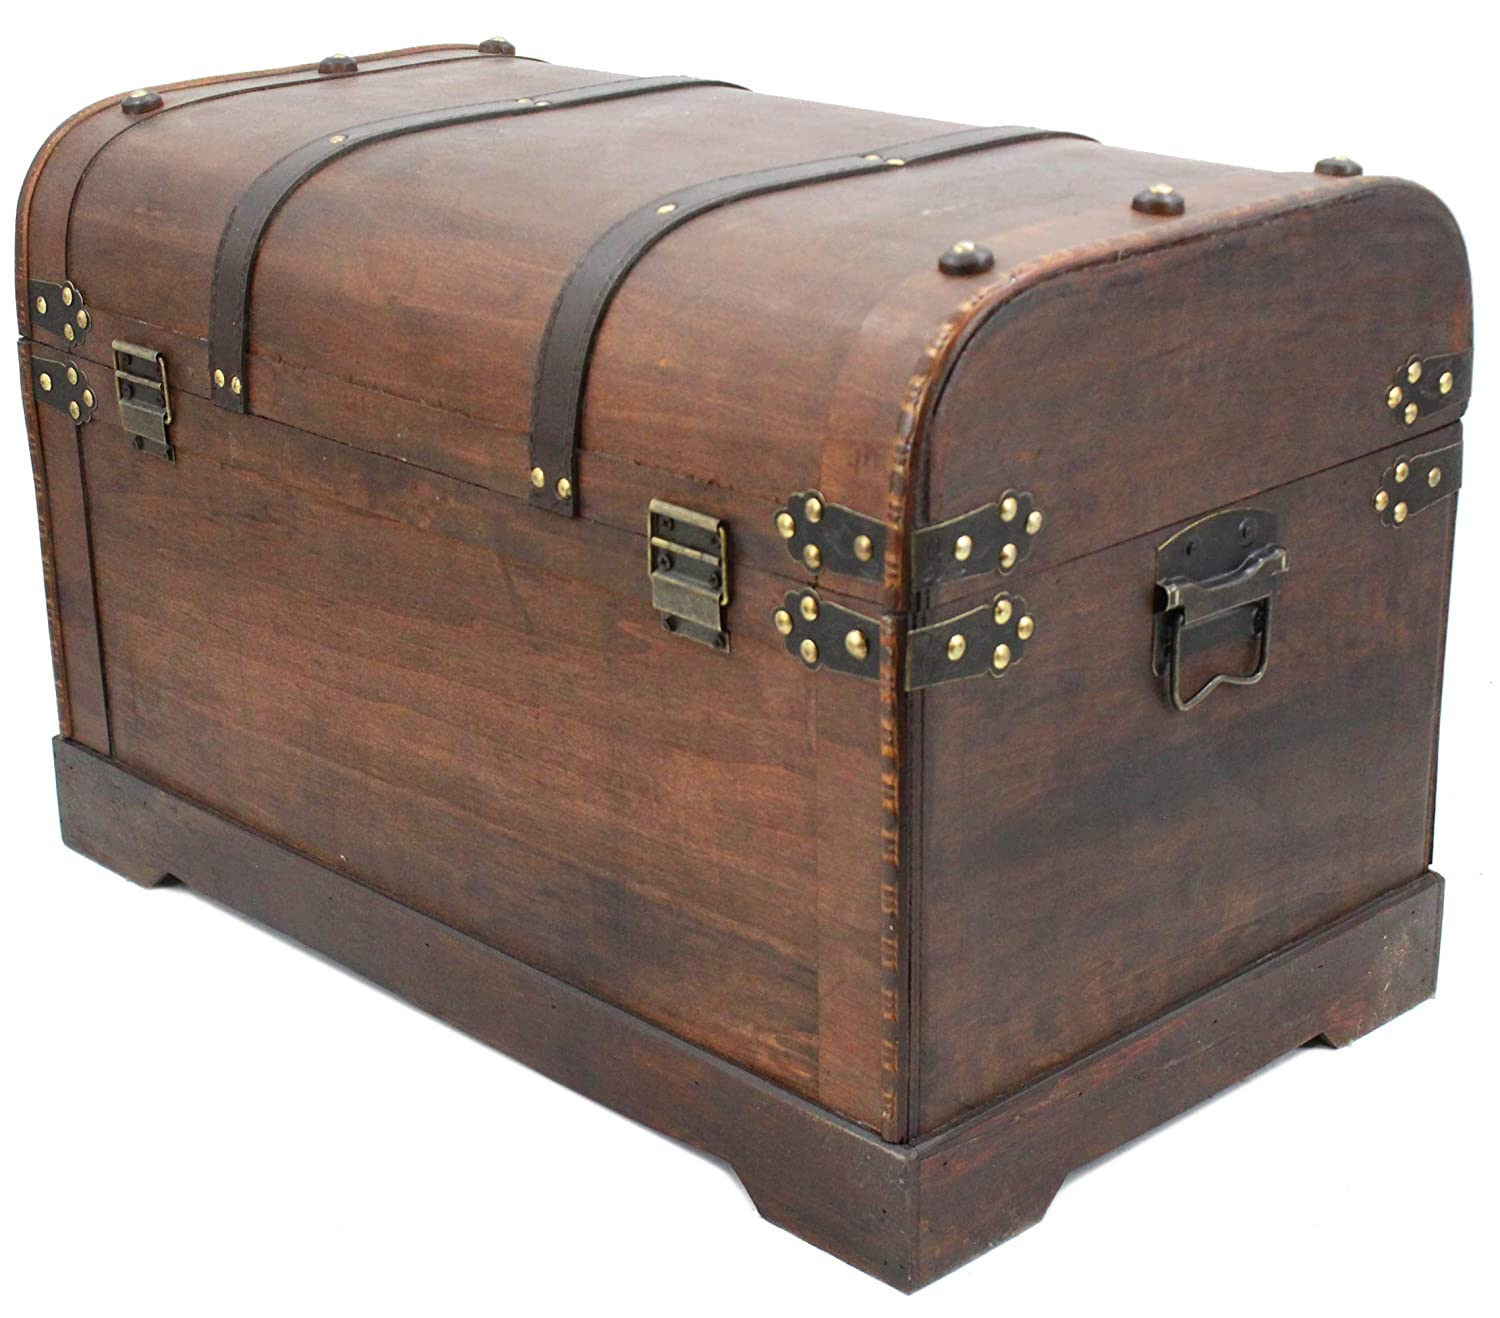 Wooden Storage Chest Living Room Furniture Shoe Blanket Cabinet Chests Coffee Table Bedroom Trunk Box Wood Trunks by Well Pack Box Dark Brown, Medium